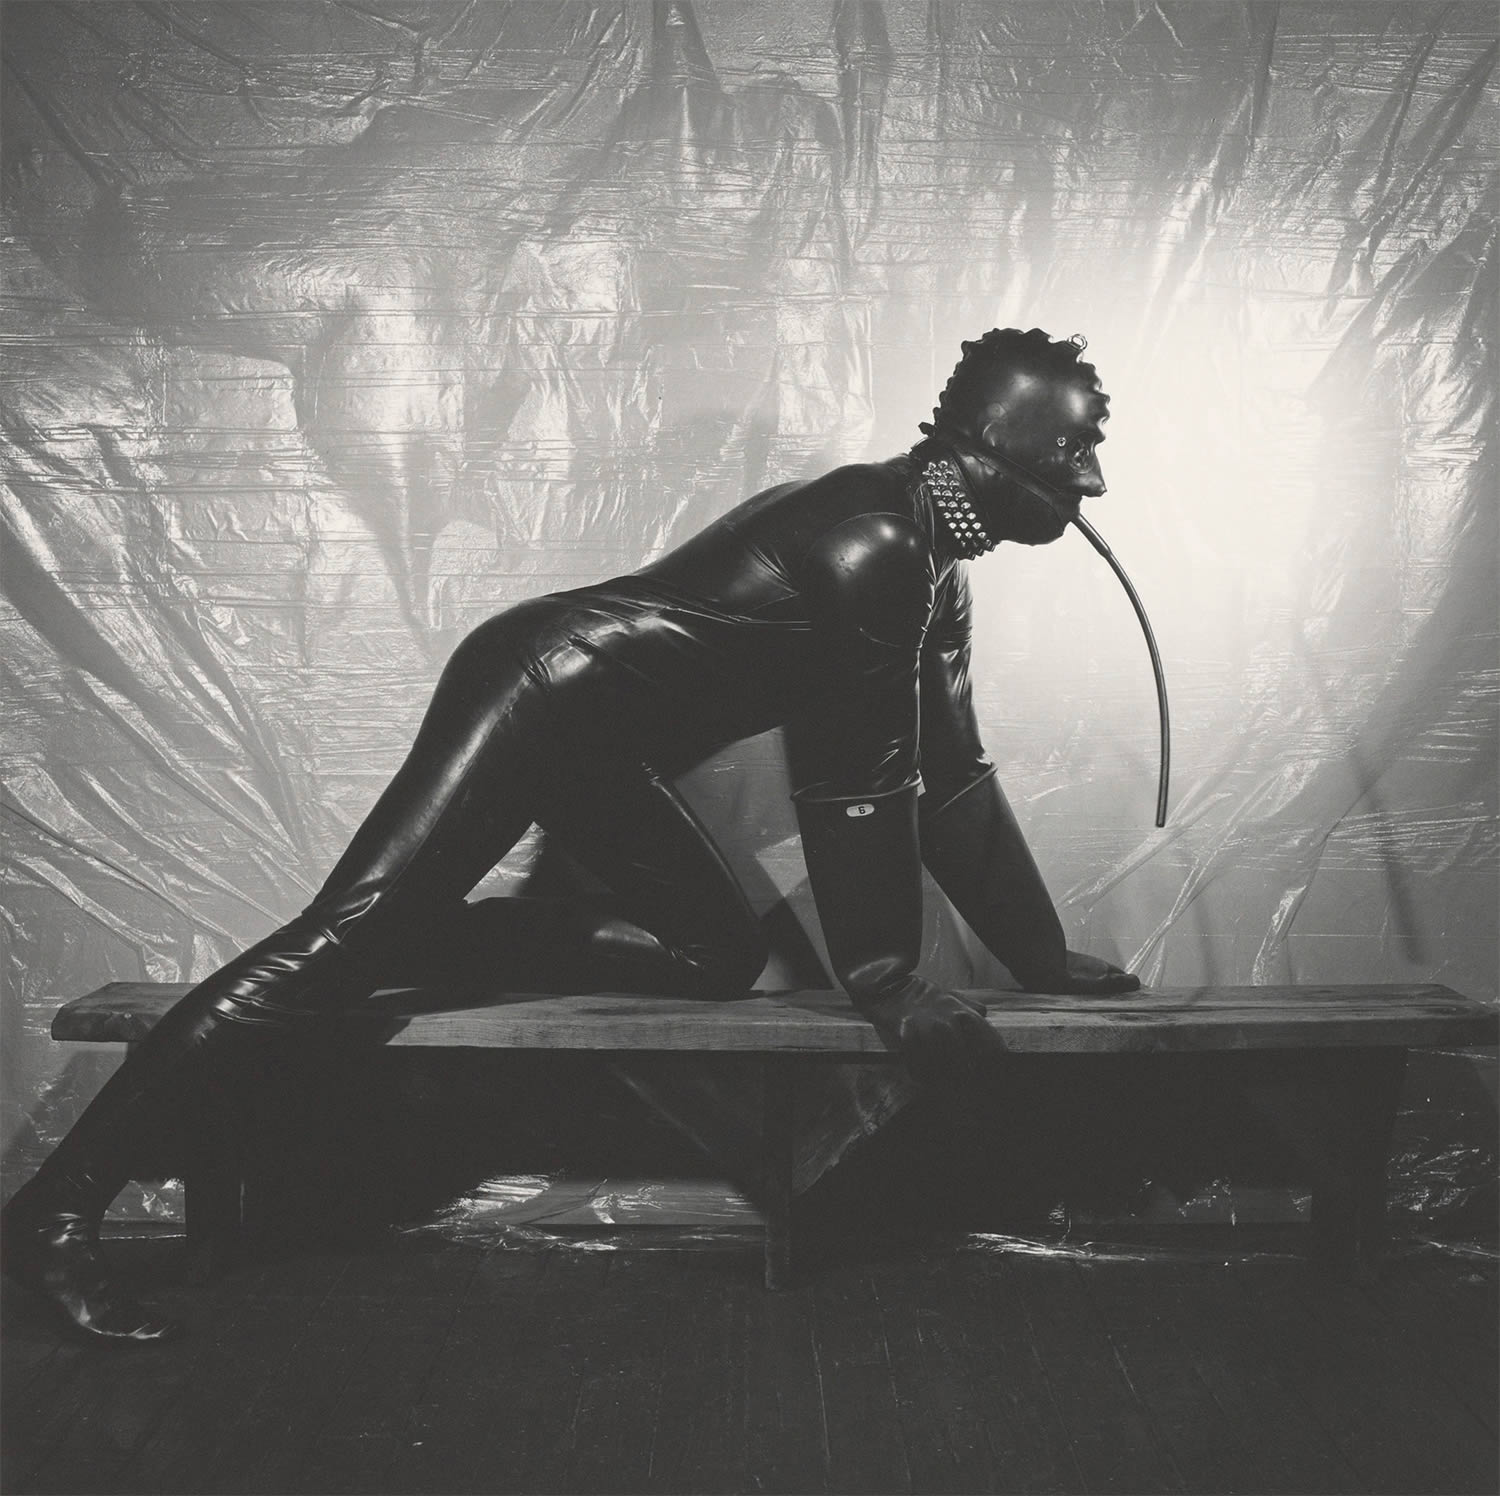 man in latex suit, bdsm, photo © The Robert Mapplethorpe Foundation, Inc.